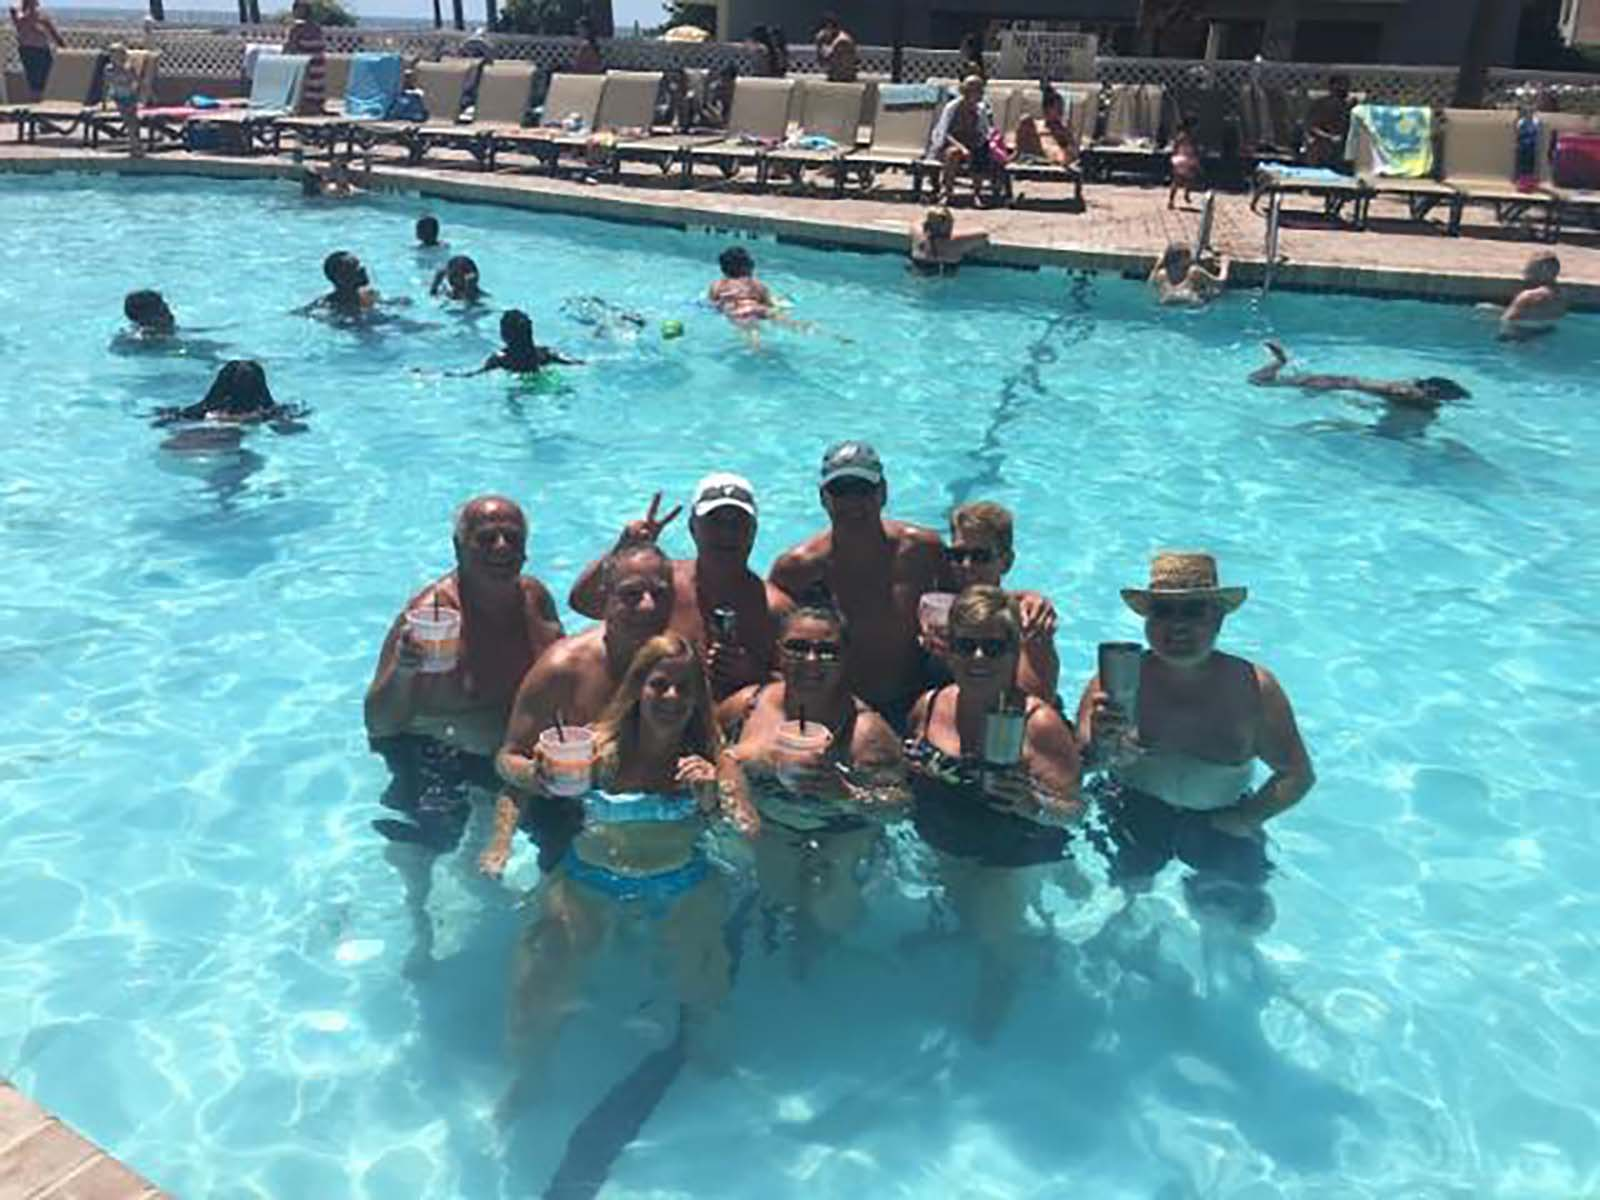 Group of adults with drinks in pool